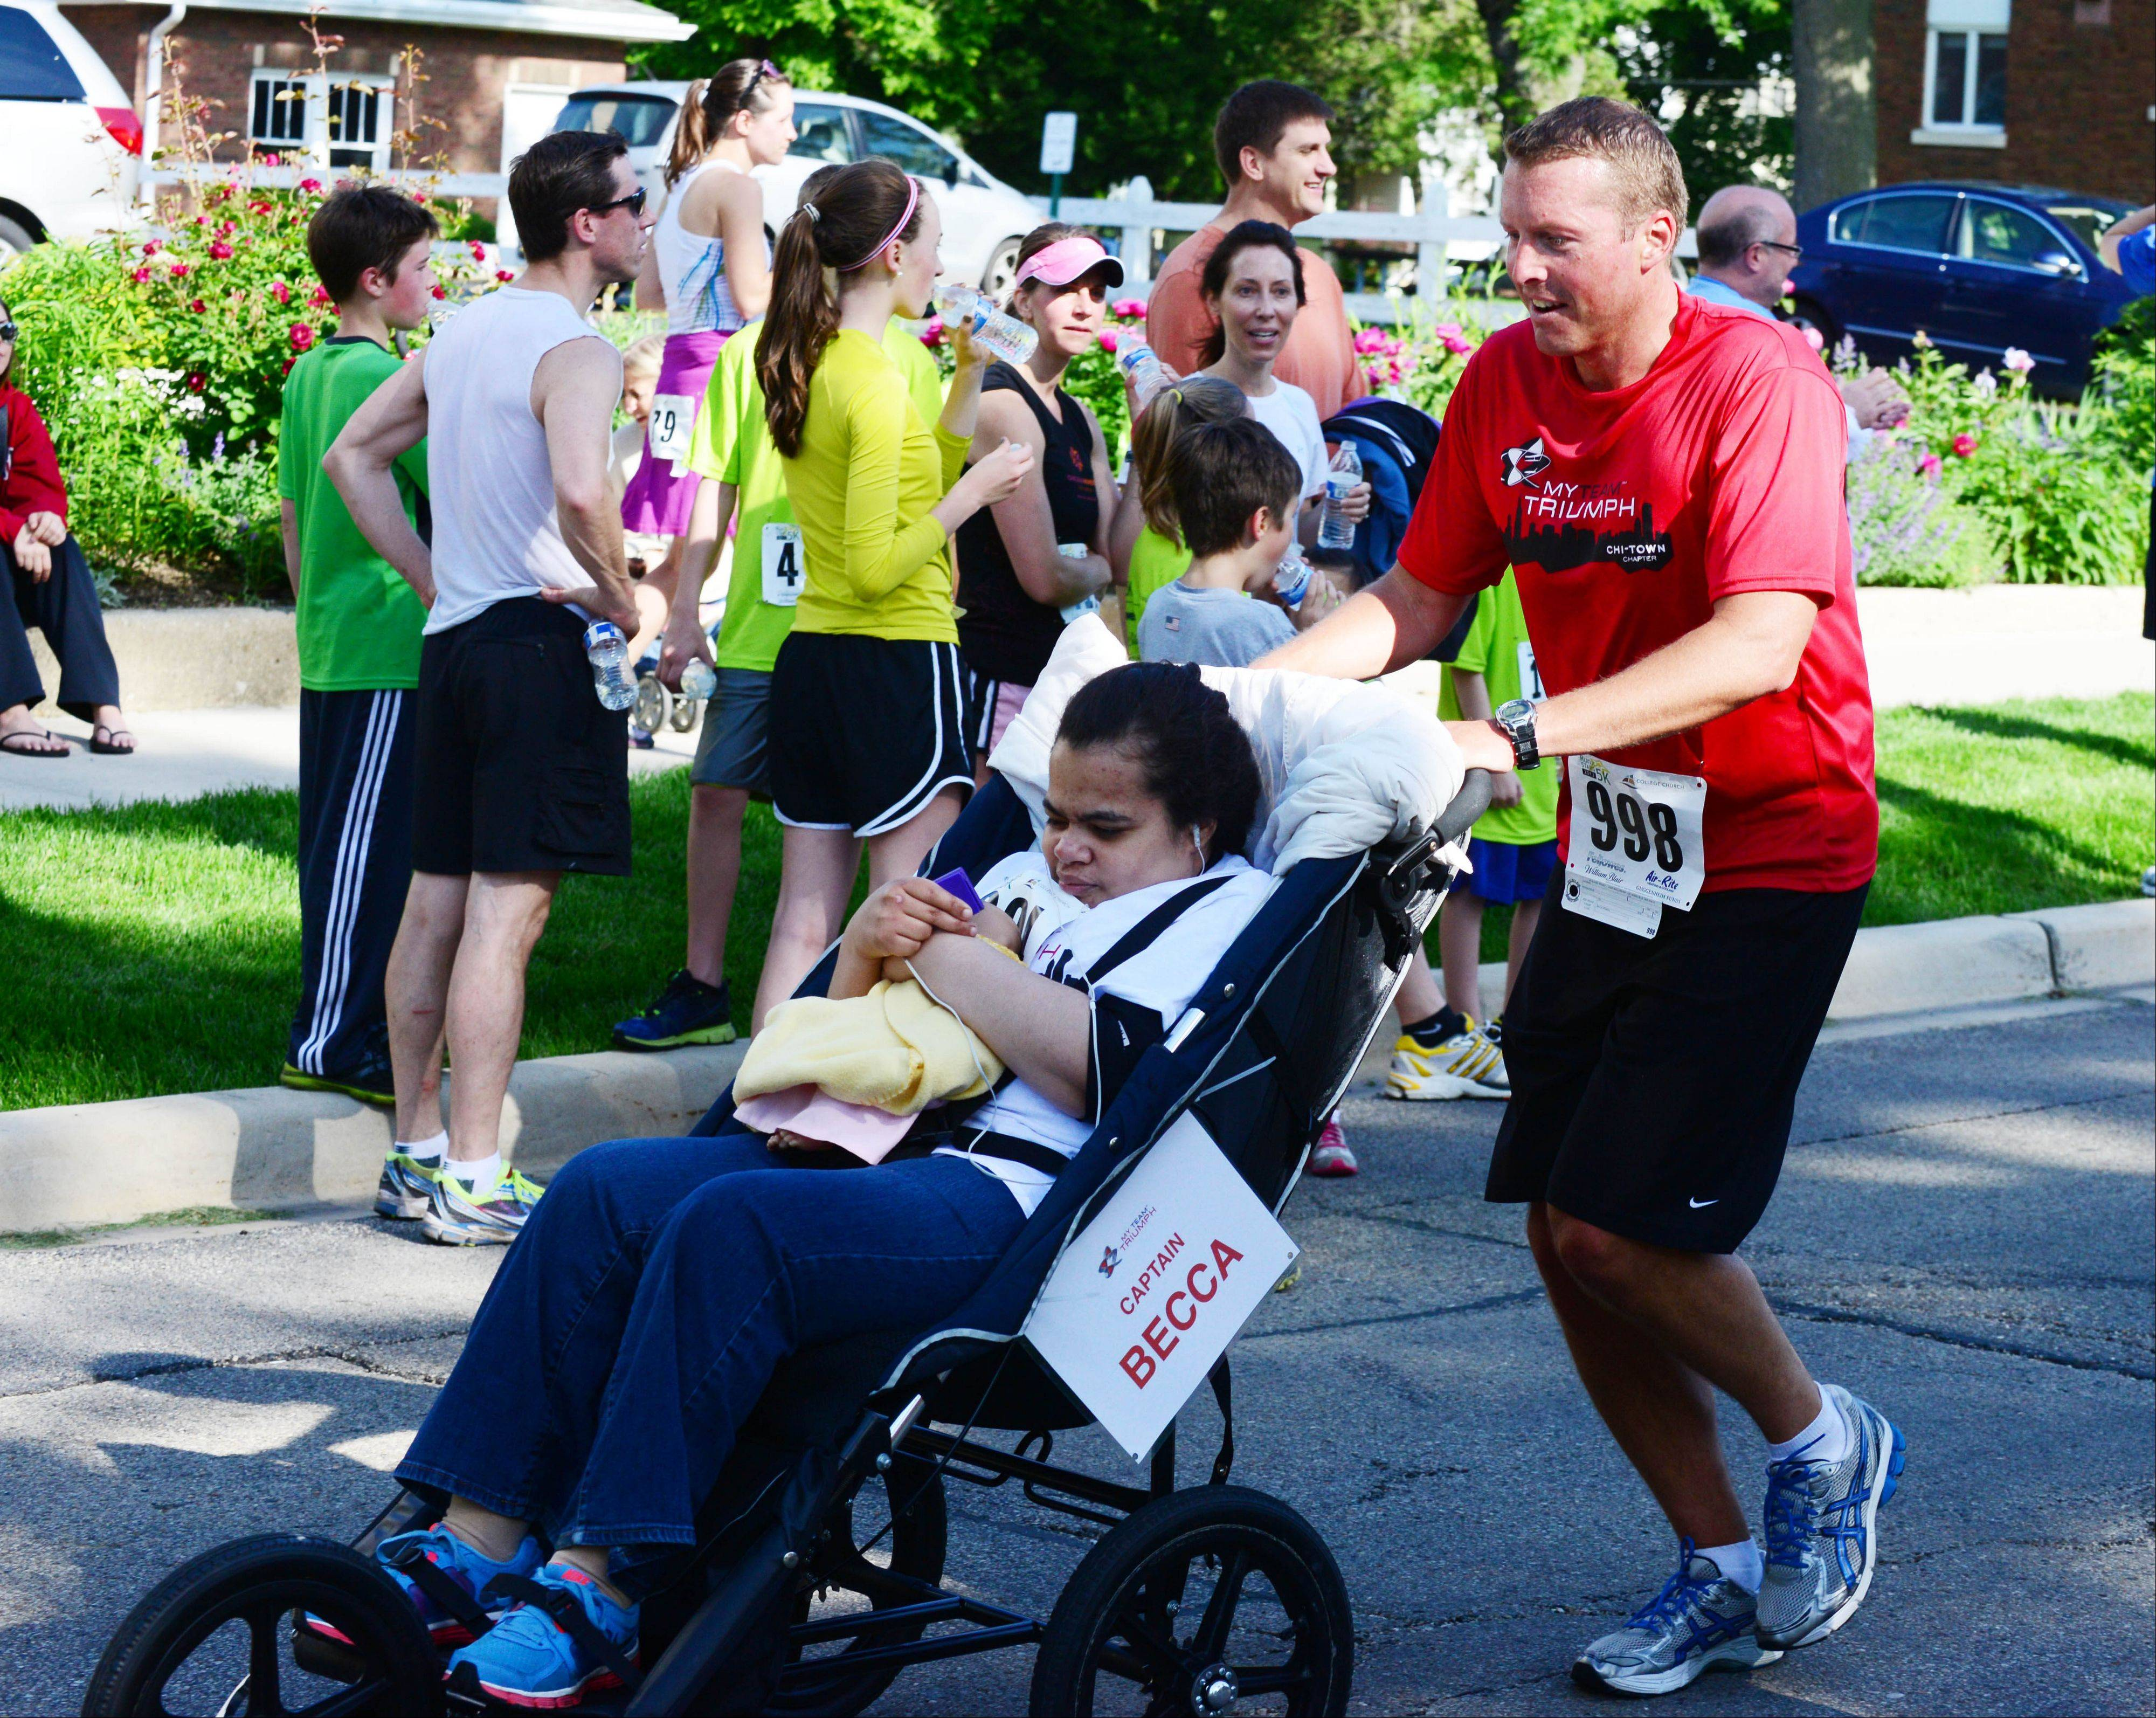 Runners' personal bests come from helping others